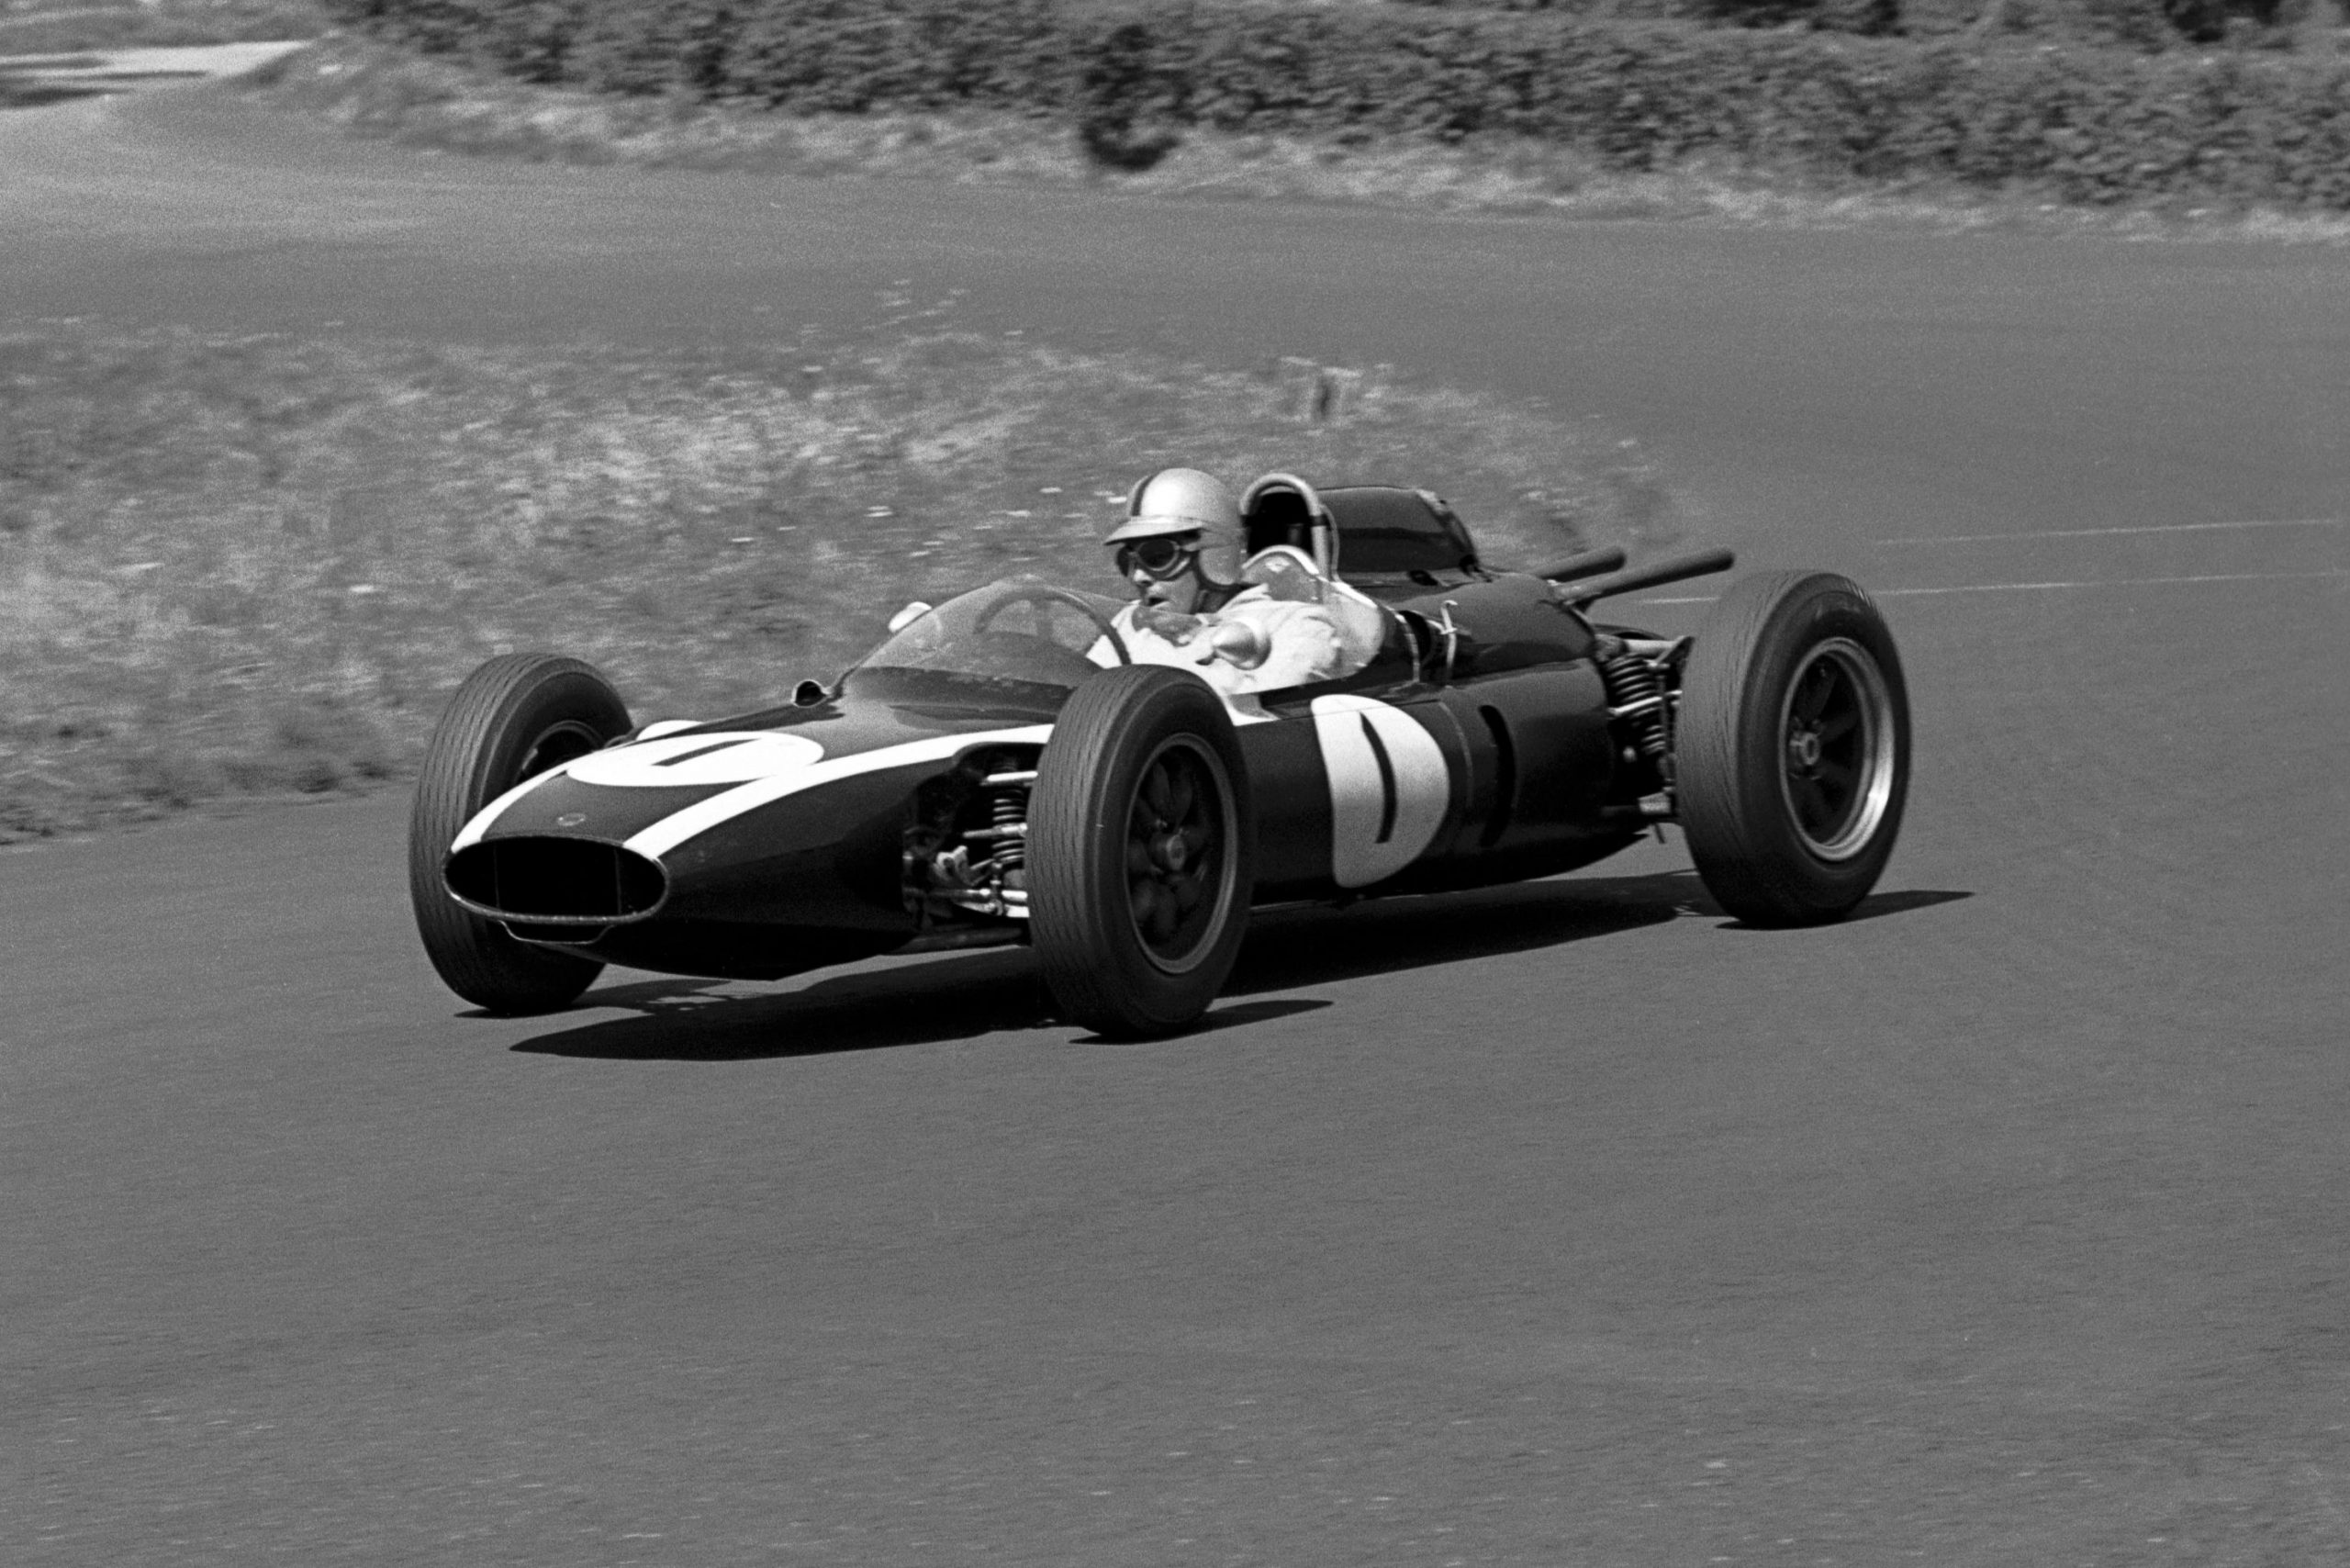 Jack Brabham in the Cooper T58, which spun out on the first lap when his throttle jammed.